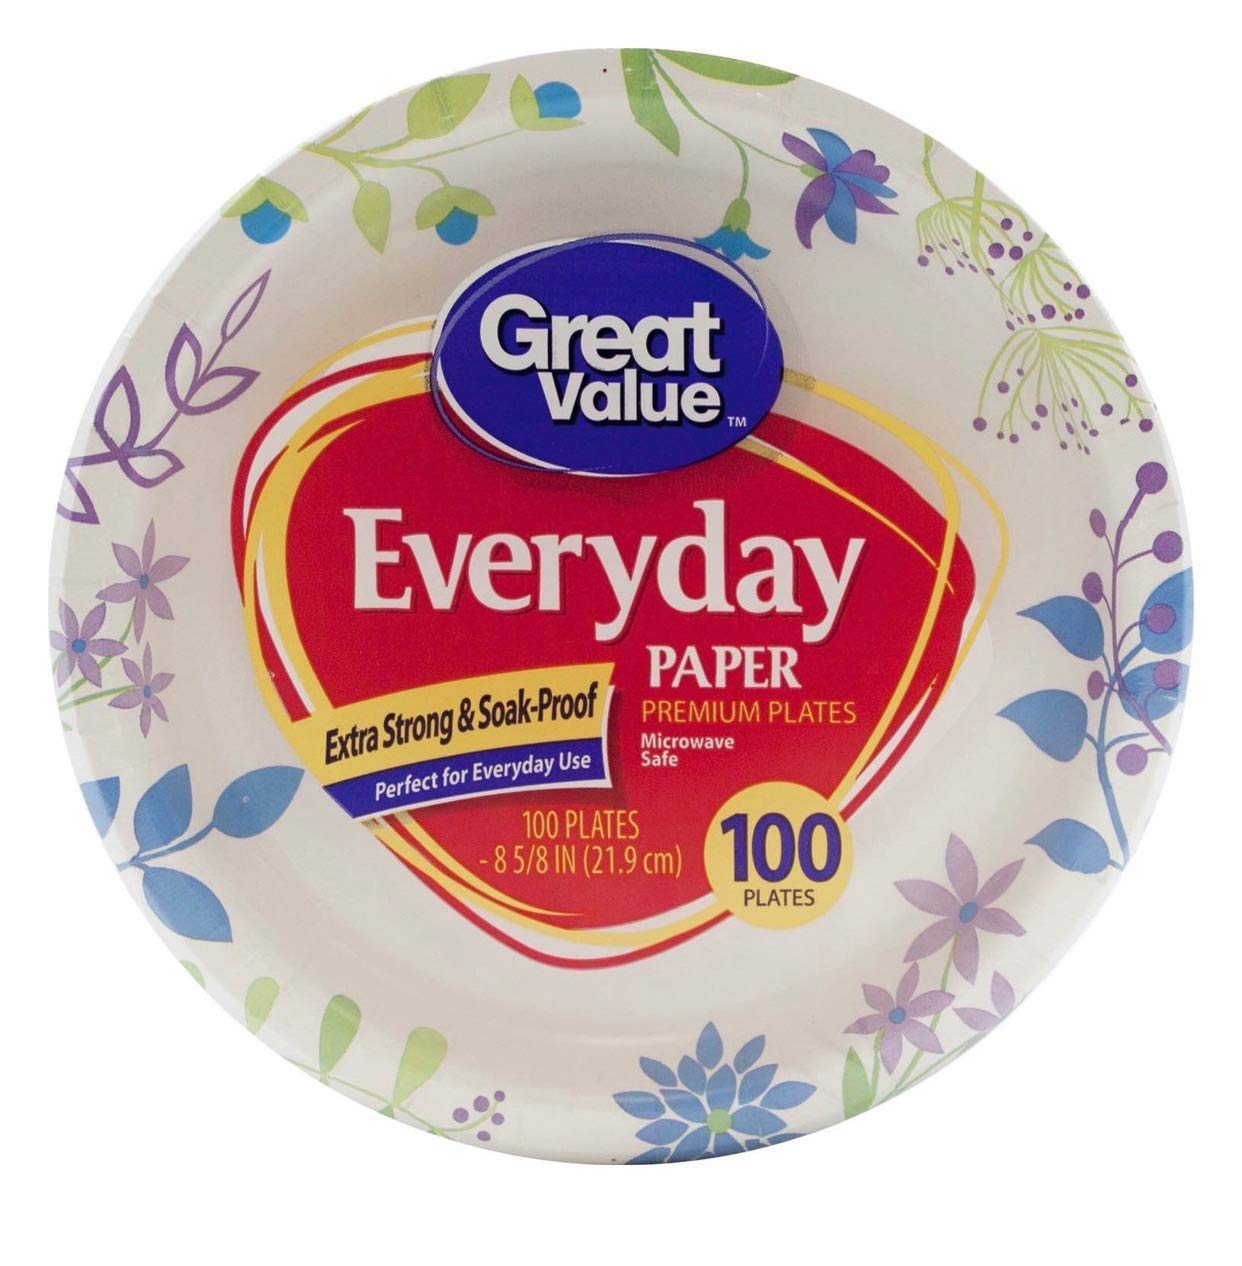 Great Value 8 5/8'' Heavy Duty Premium Party Paper Plates, 100 ct (200 ct) by Great Value (Image #1)